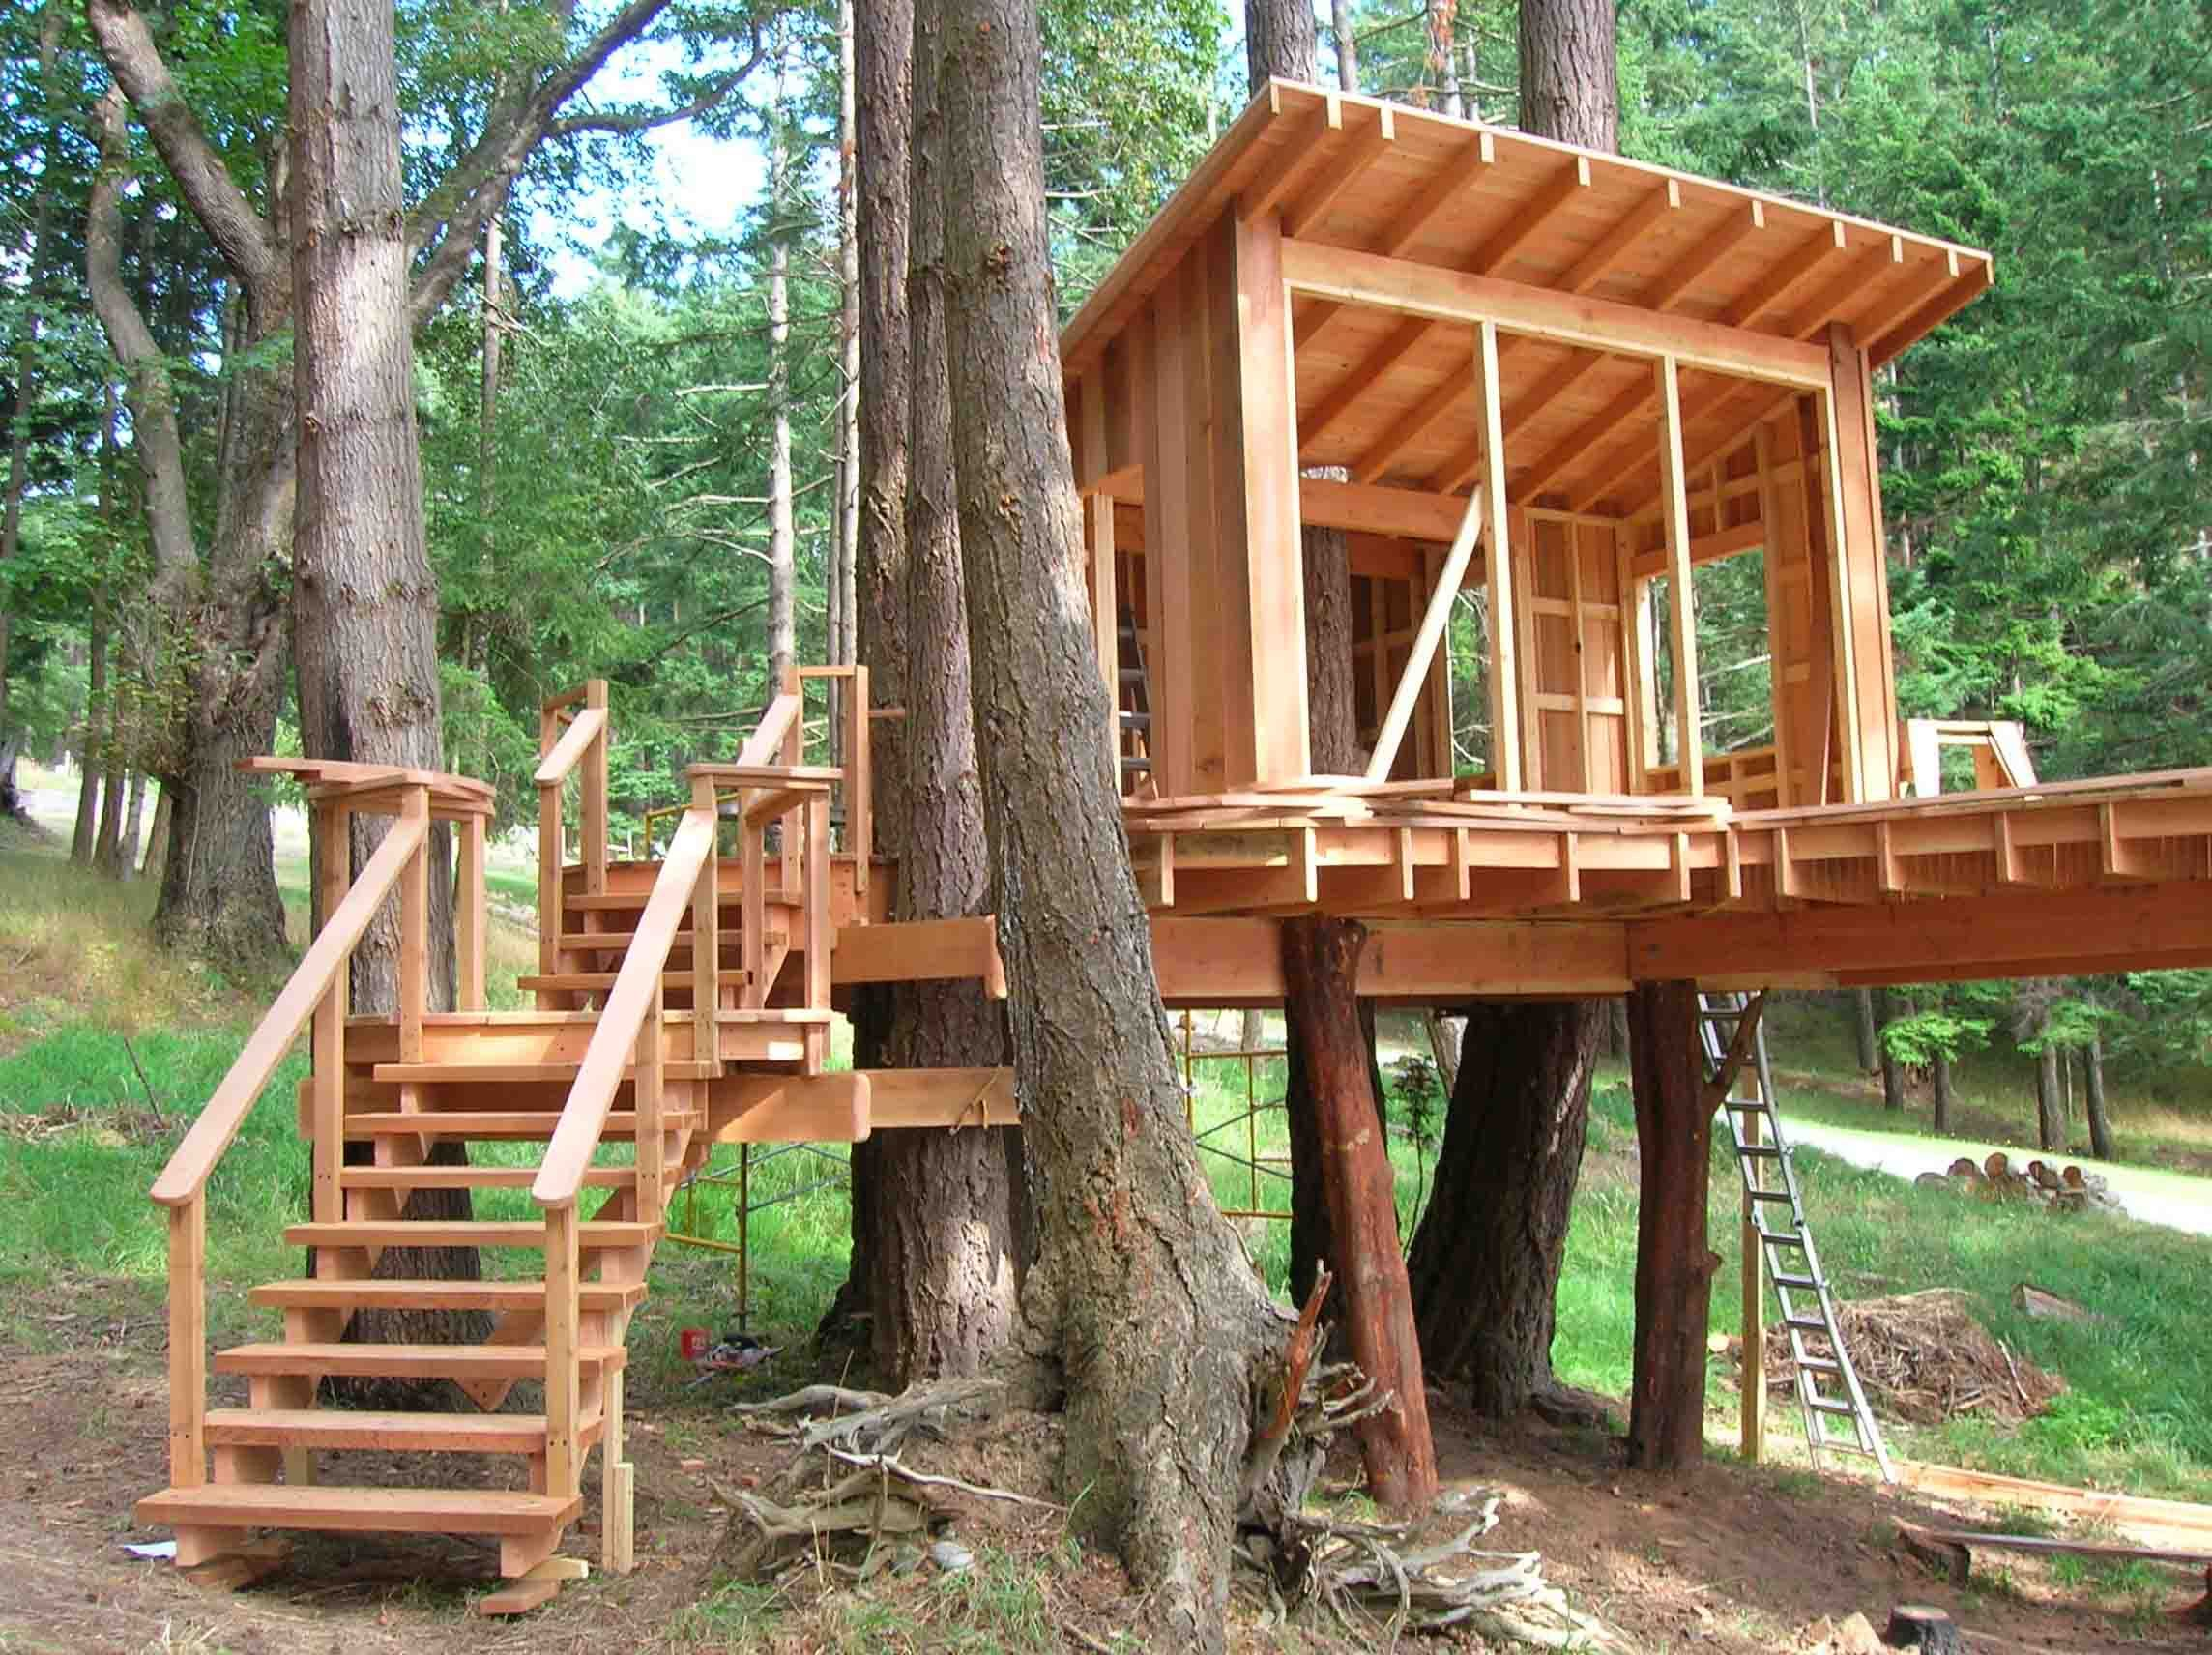 Pete Nelson's Tree Houses Let Homeowners Live the High ...